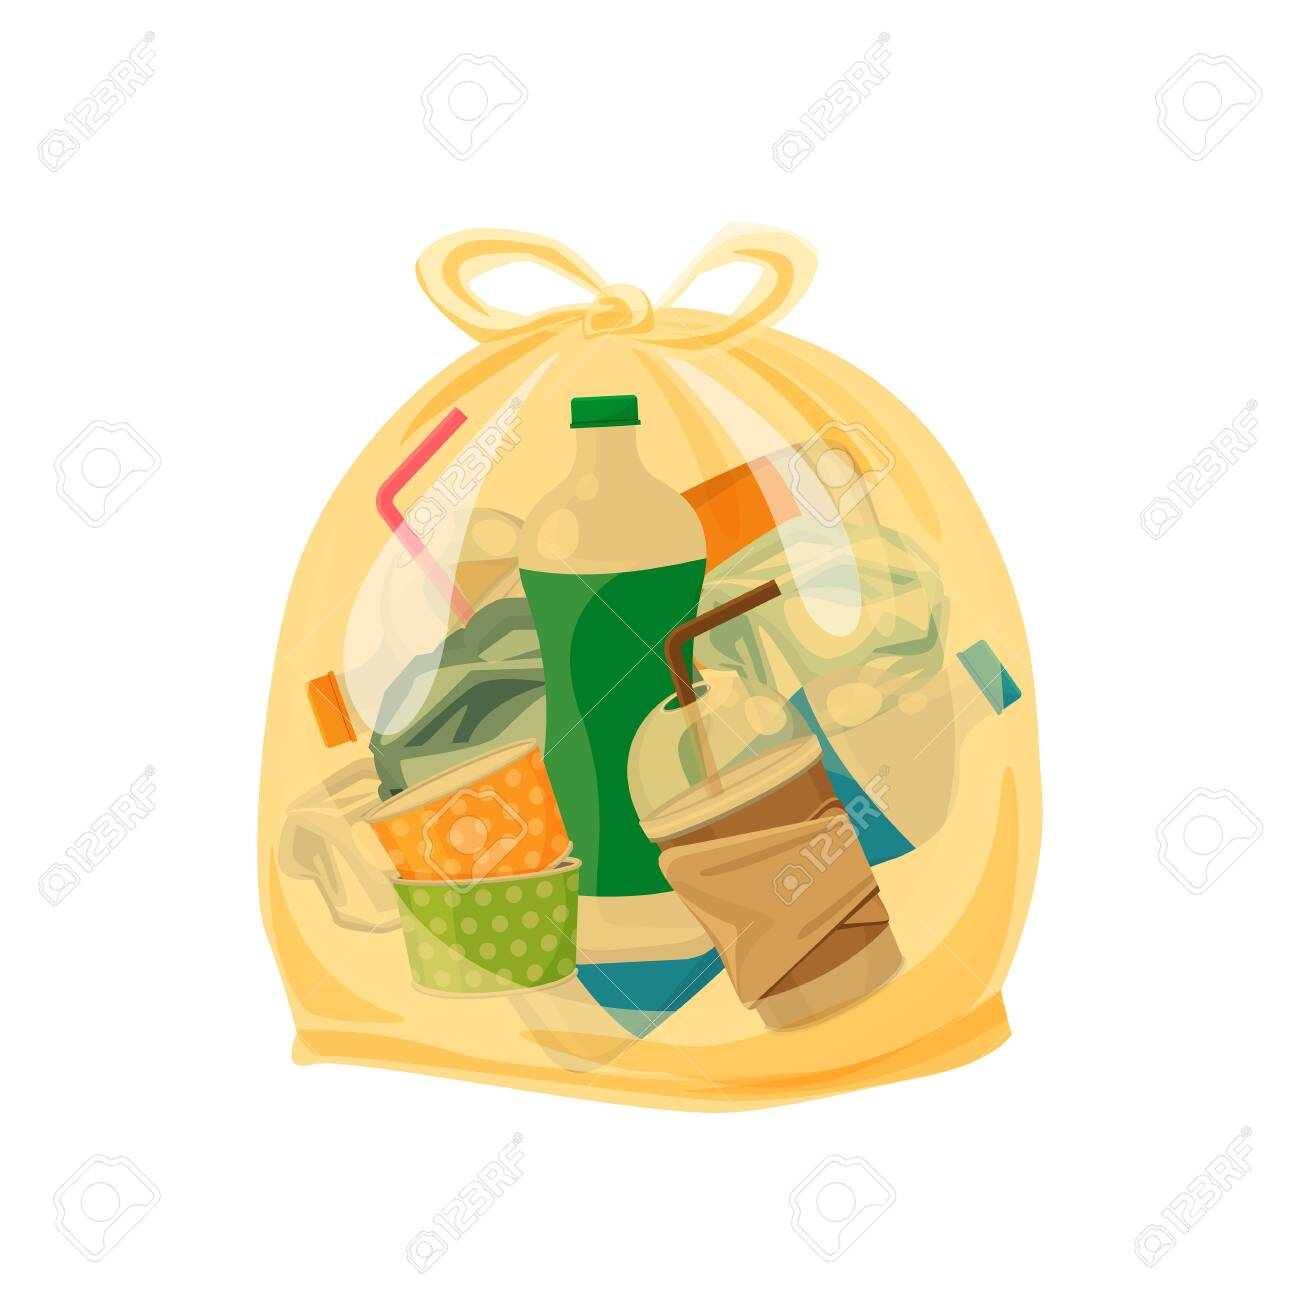 plastic waste packed in the transparent plastic bags for waste separation isolated white square background, Illustration plastic bin bags for waste, clip art plastic bag transparent flat for graphic - 123102730